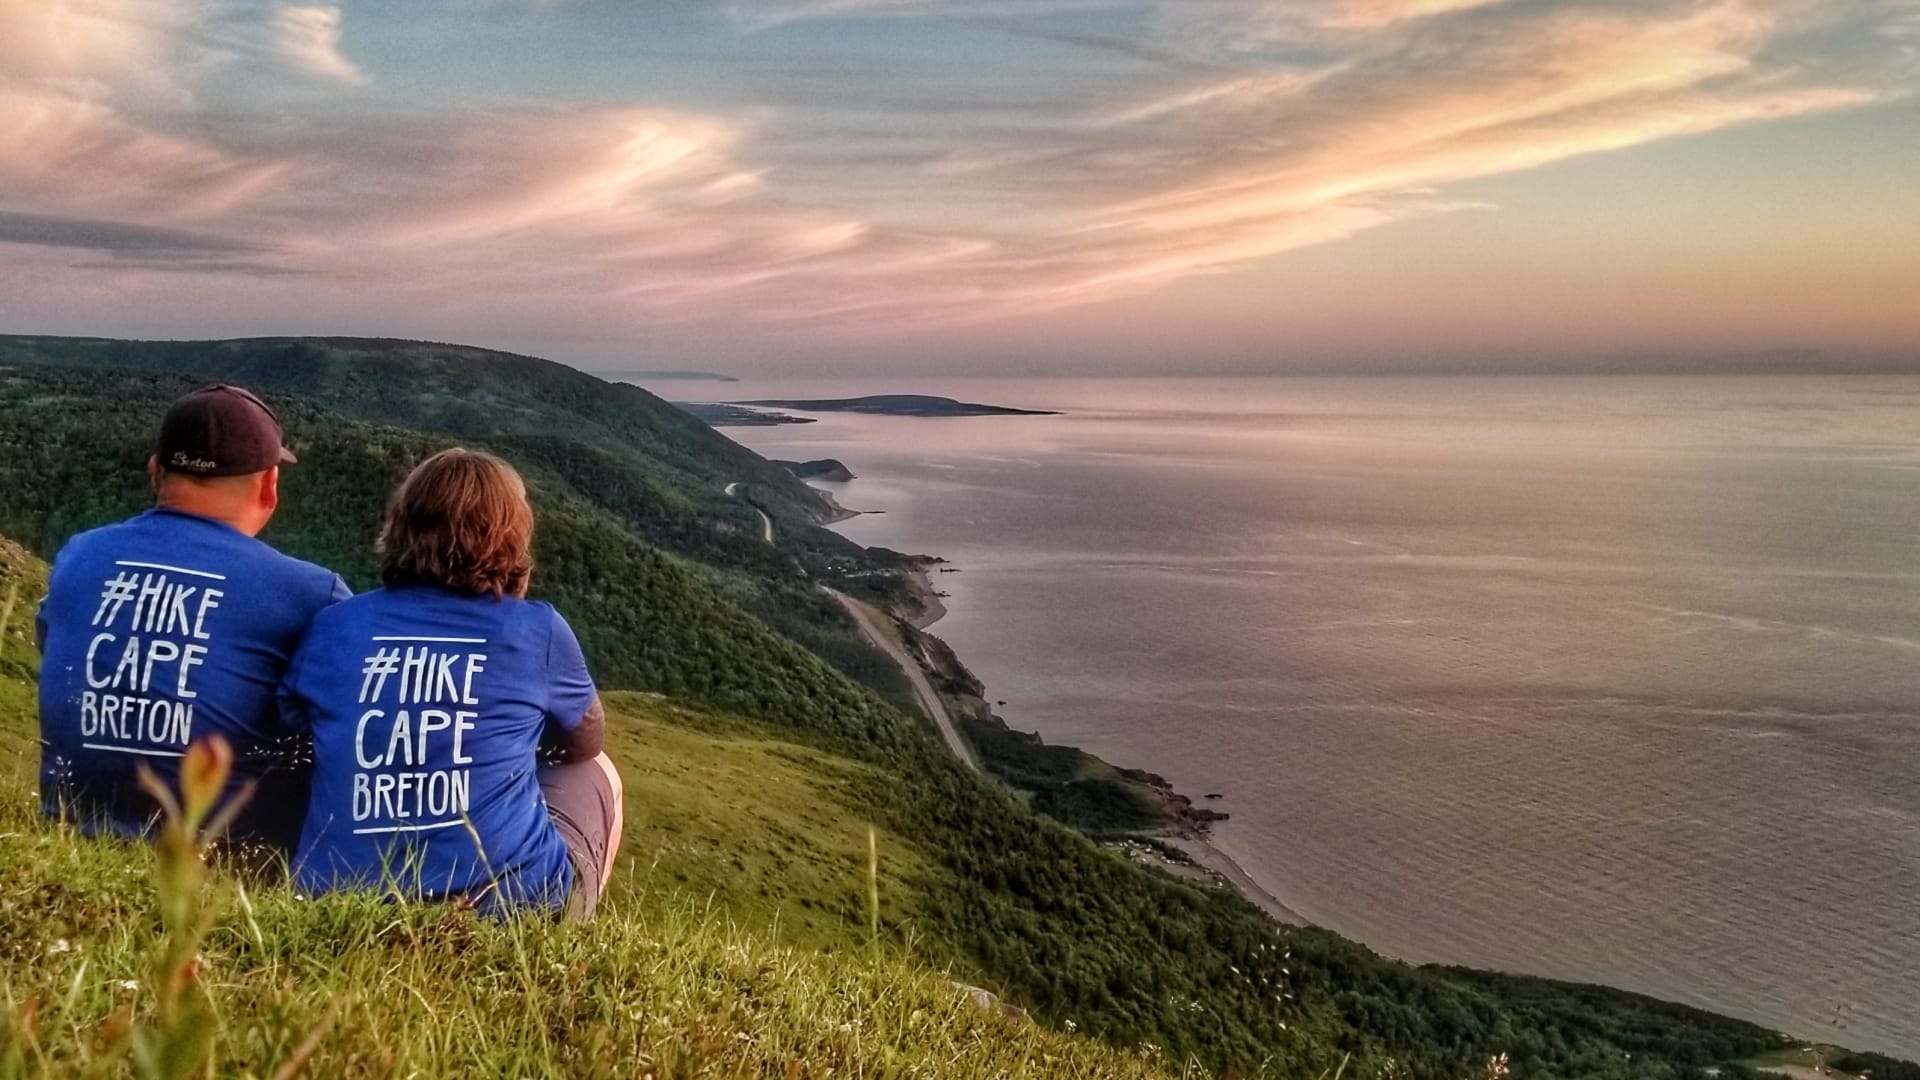 A couple sit on a grassy hill overlooking the ocean wearing shirts that say #HikeCapeBreton